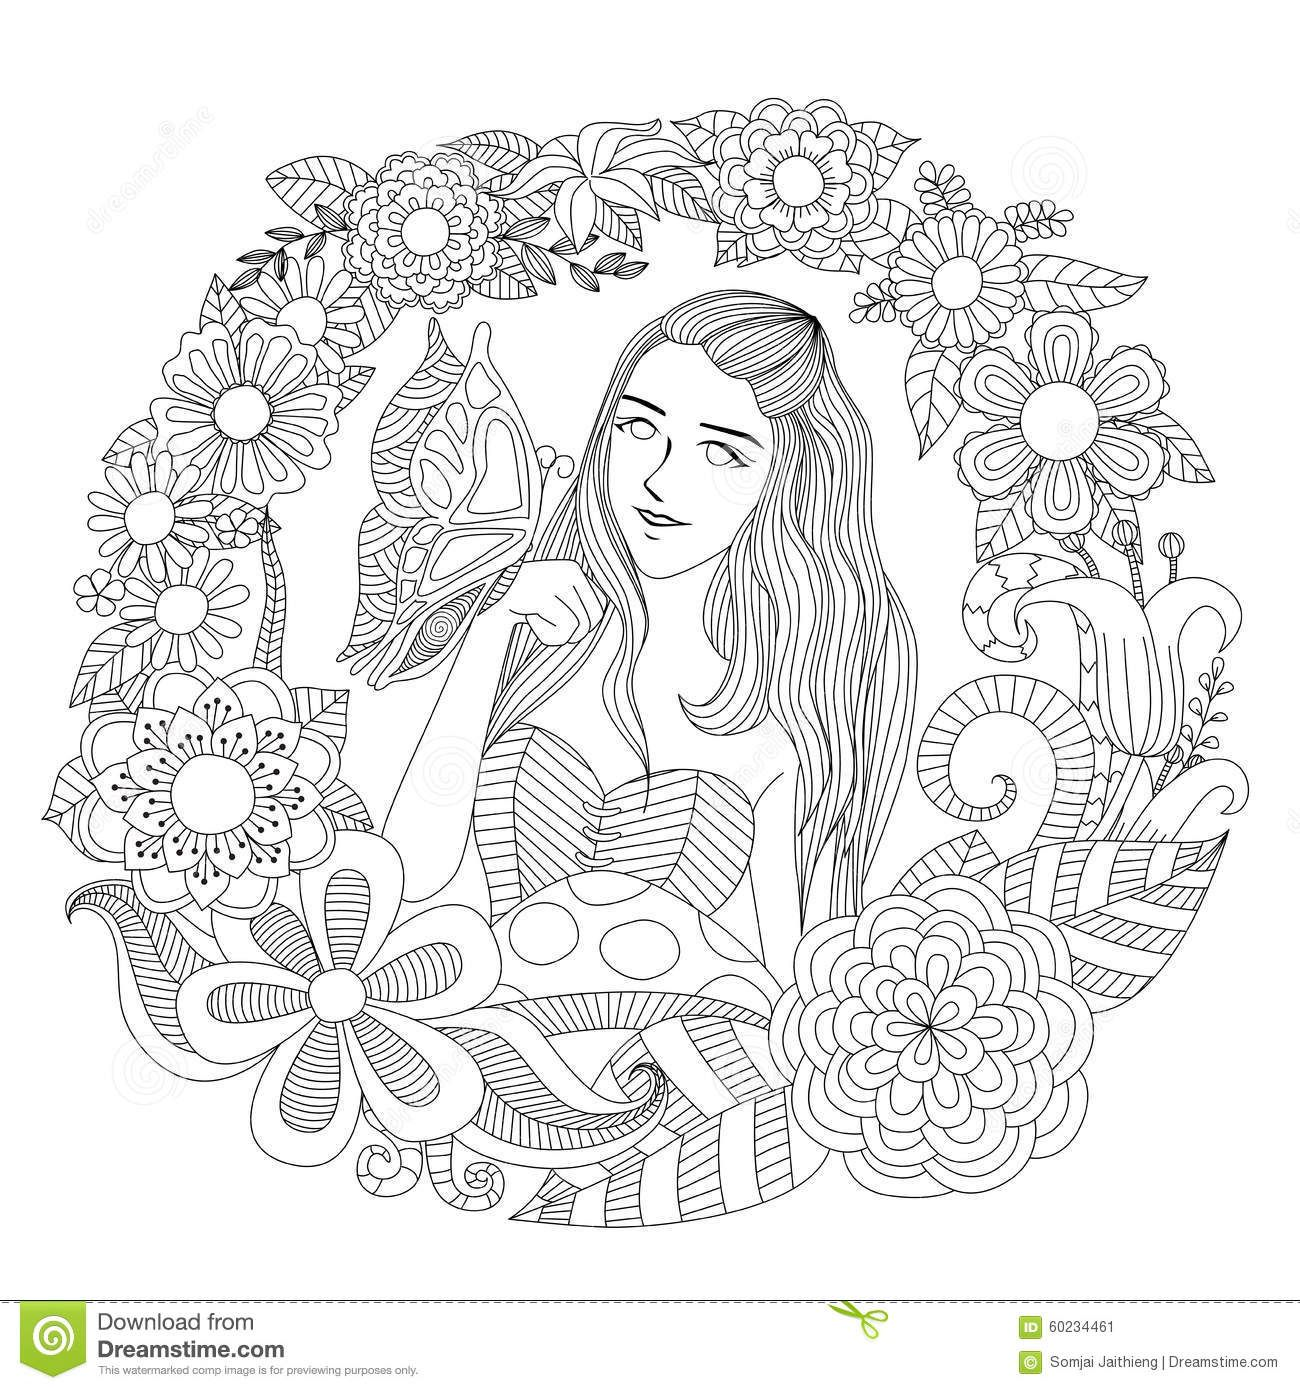 Pretty girl coloring pages - Girl Garden Pretty Playing Butterfly Flowers Line Art Coloring Page Adult 60234461 Jpg 1300 1390 Tattoo Pinterest